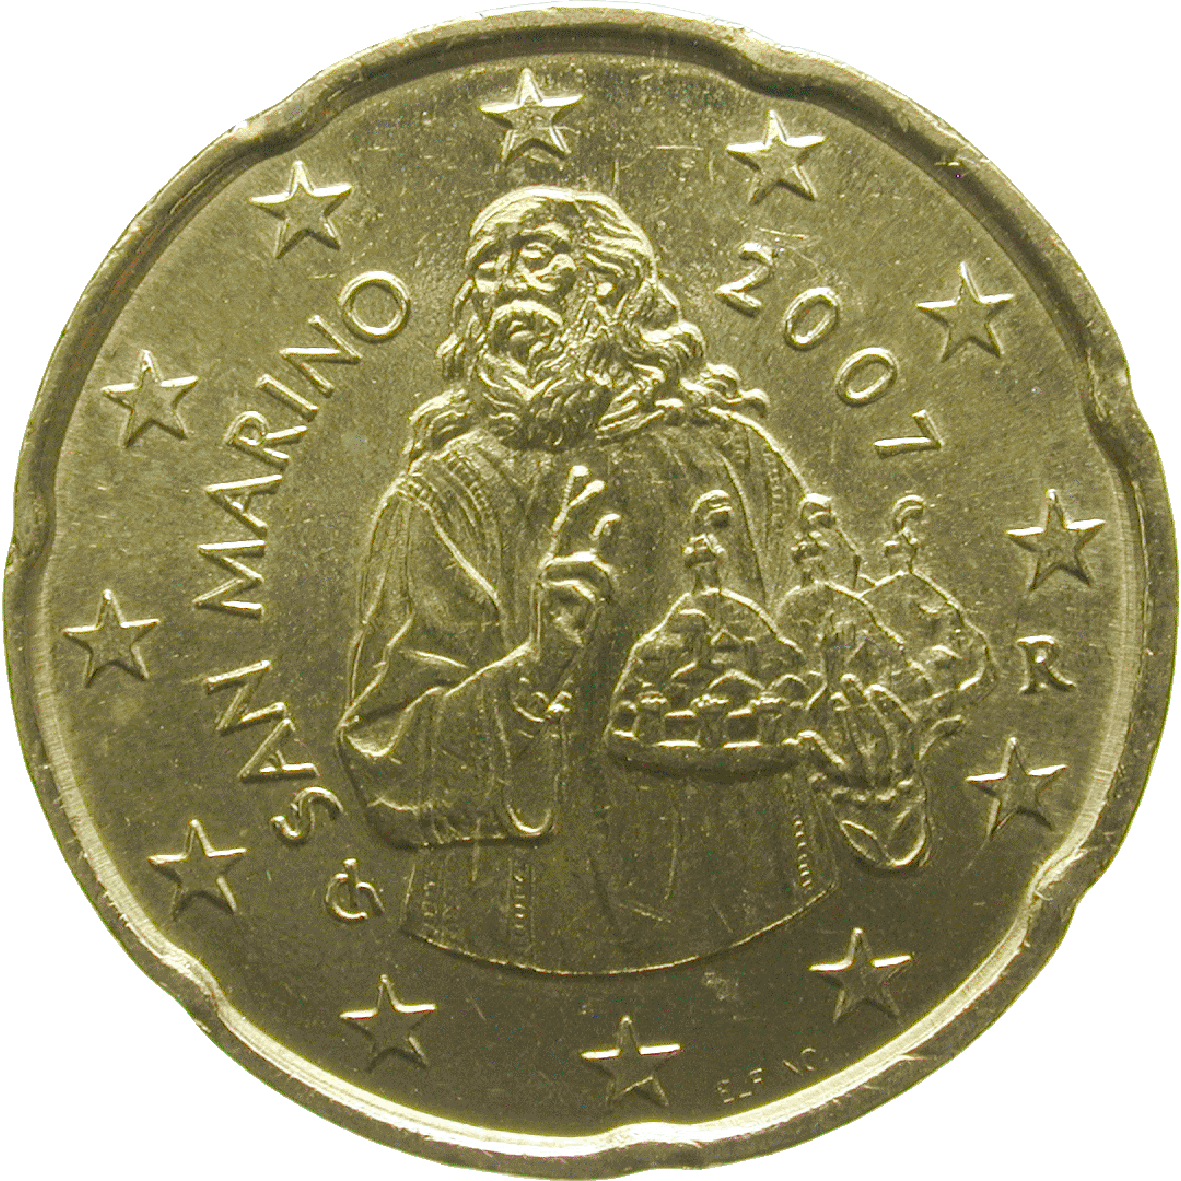 Republic of San Marino, 20 Euro Cent 2008 (reverse)